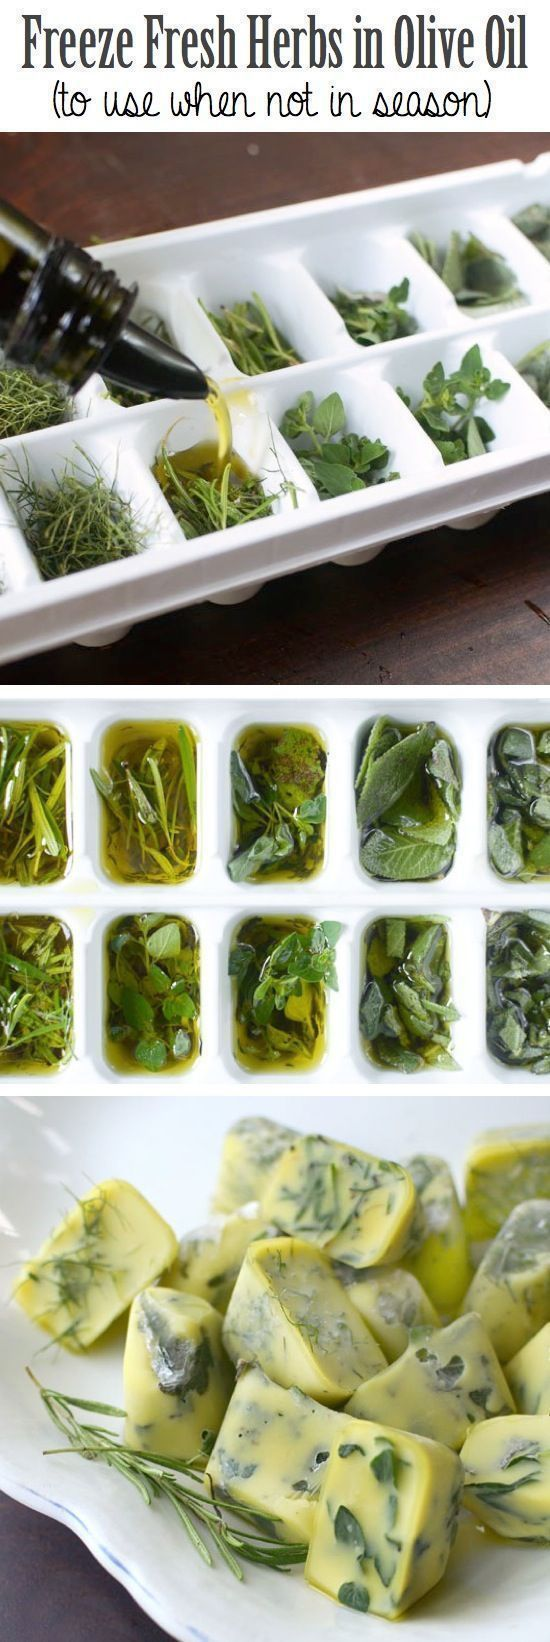 Such a great idea! Preserve herbs by freezing them in an ice cube tray with olive oil! Brilliant kitchen hacks!